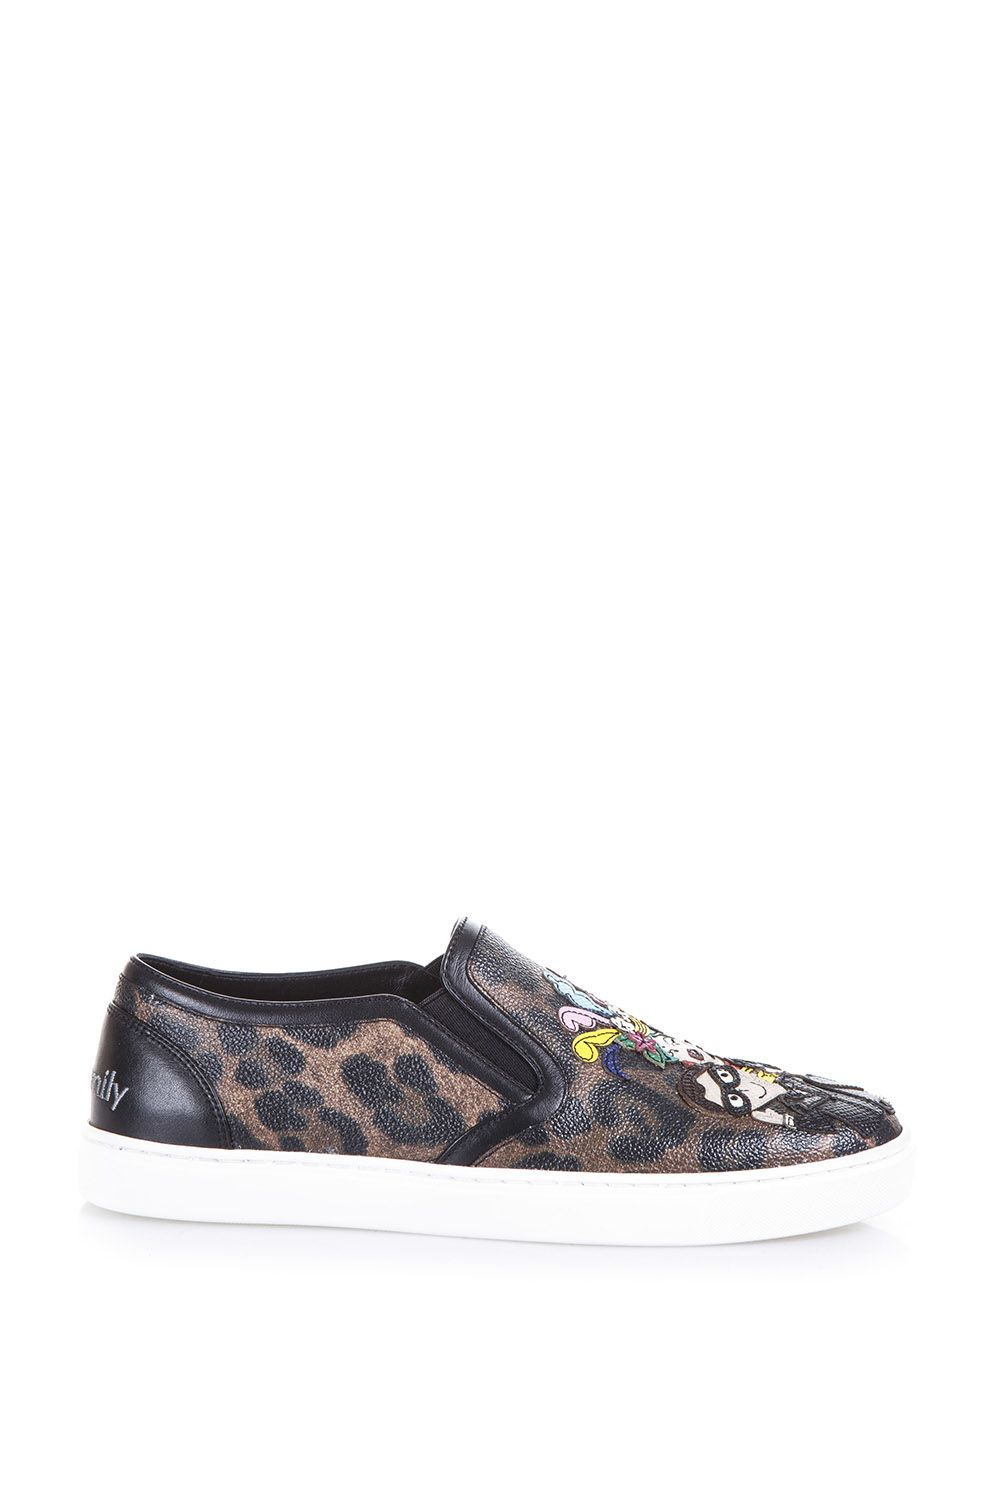 Dolce & Gabbana Designers Patch Leopard Printed Sneakers